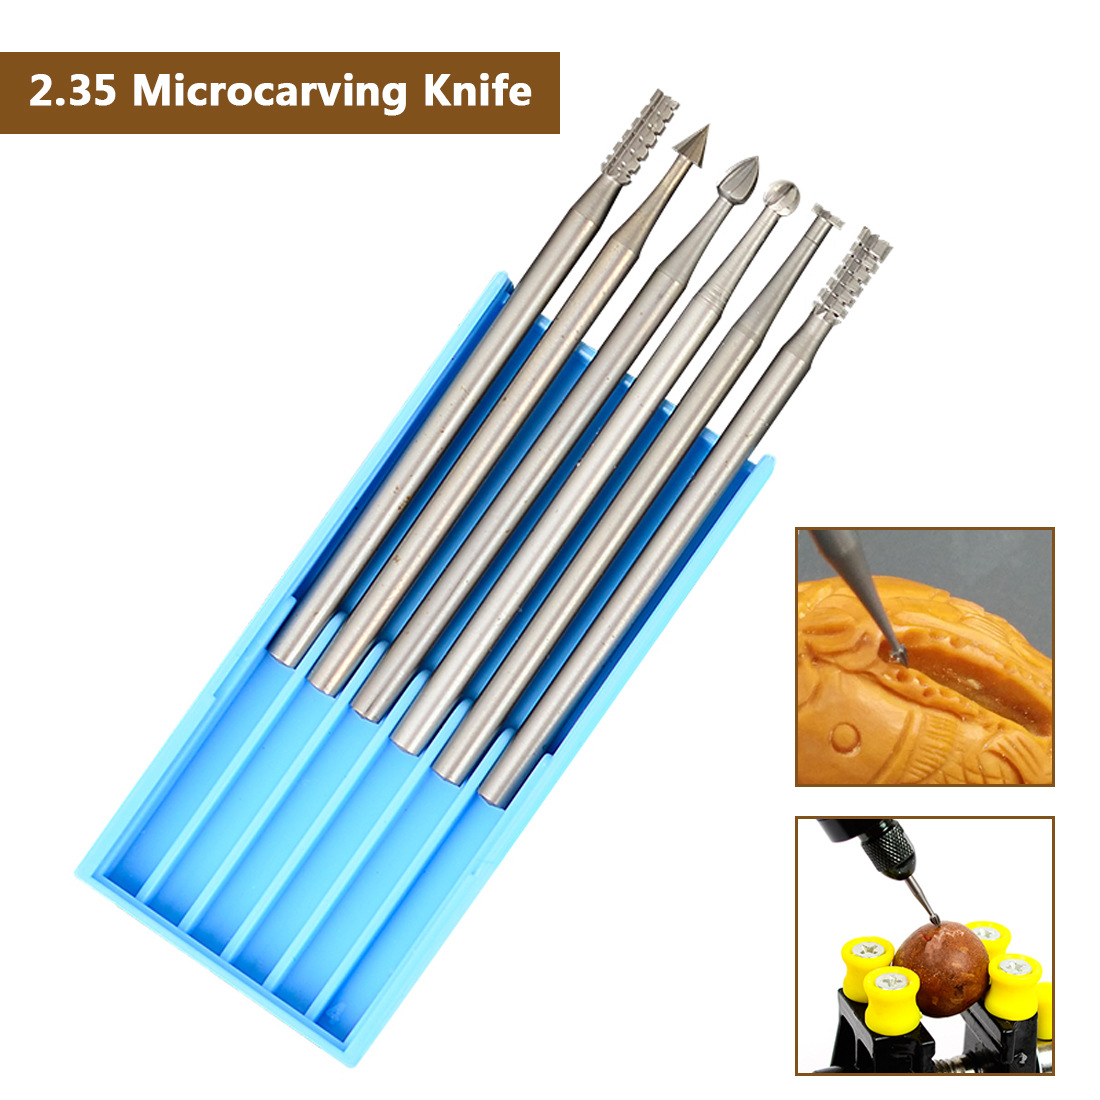 Microcarving Knife Olive Carving Knife Micro-knife Engraving Machine Set 6pcs 2.35MM Diameter Burs For Dremel Rotary Tool